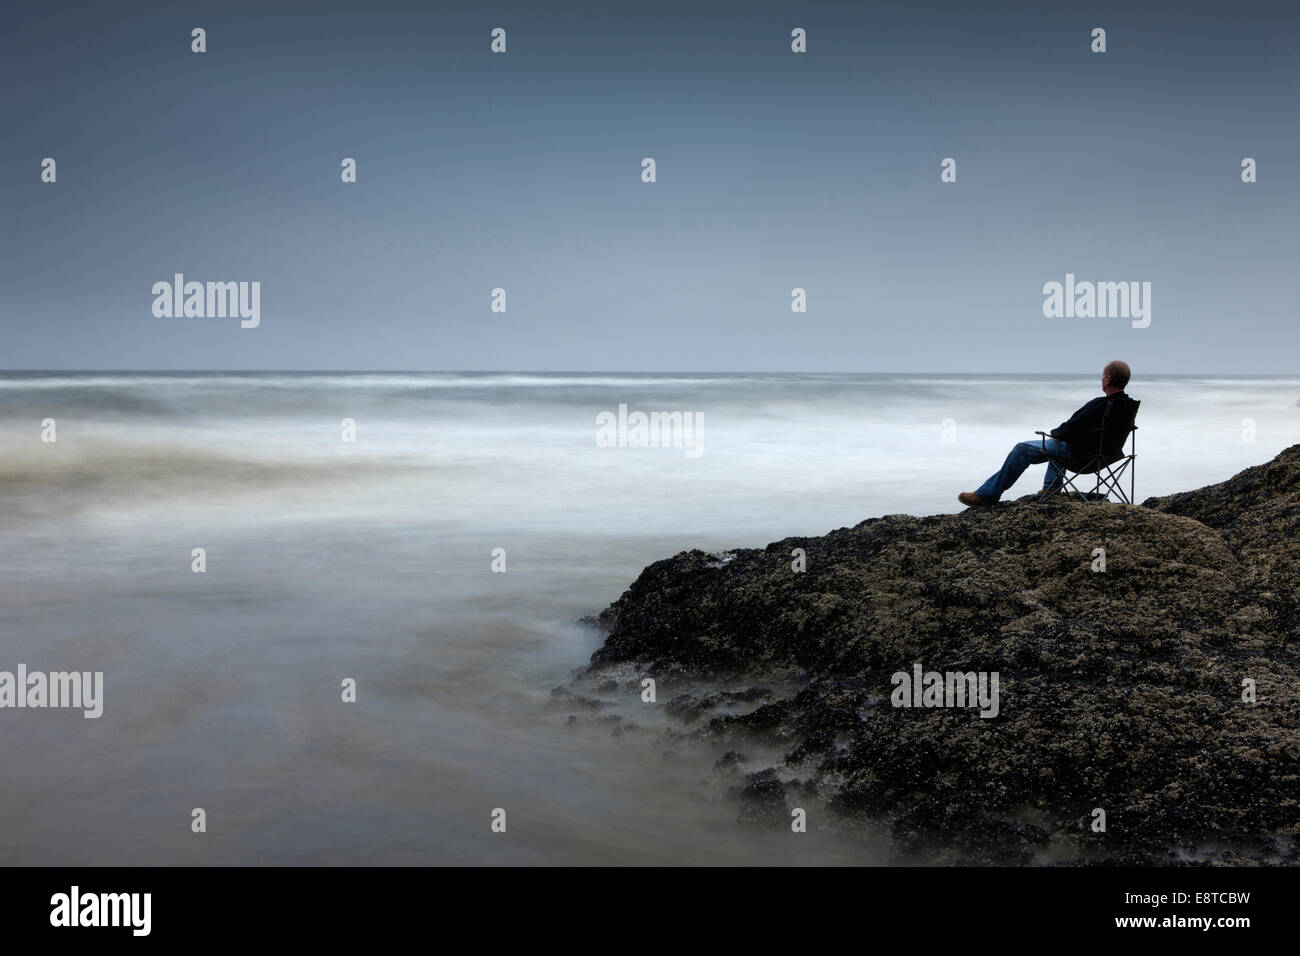 Caucasian man in chair overlooking waves on rocky beach - Stock Image